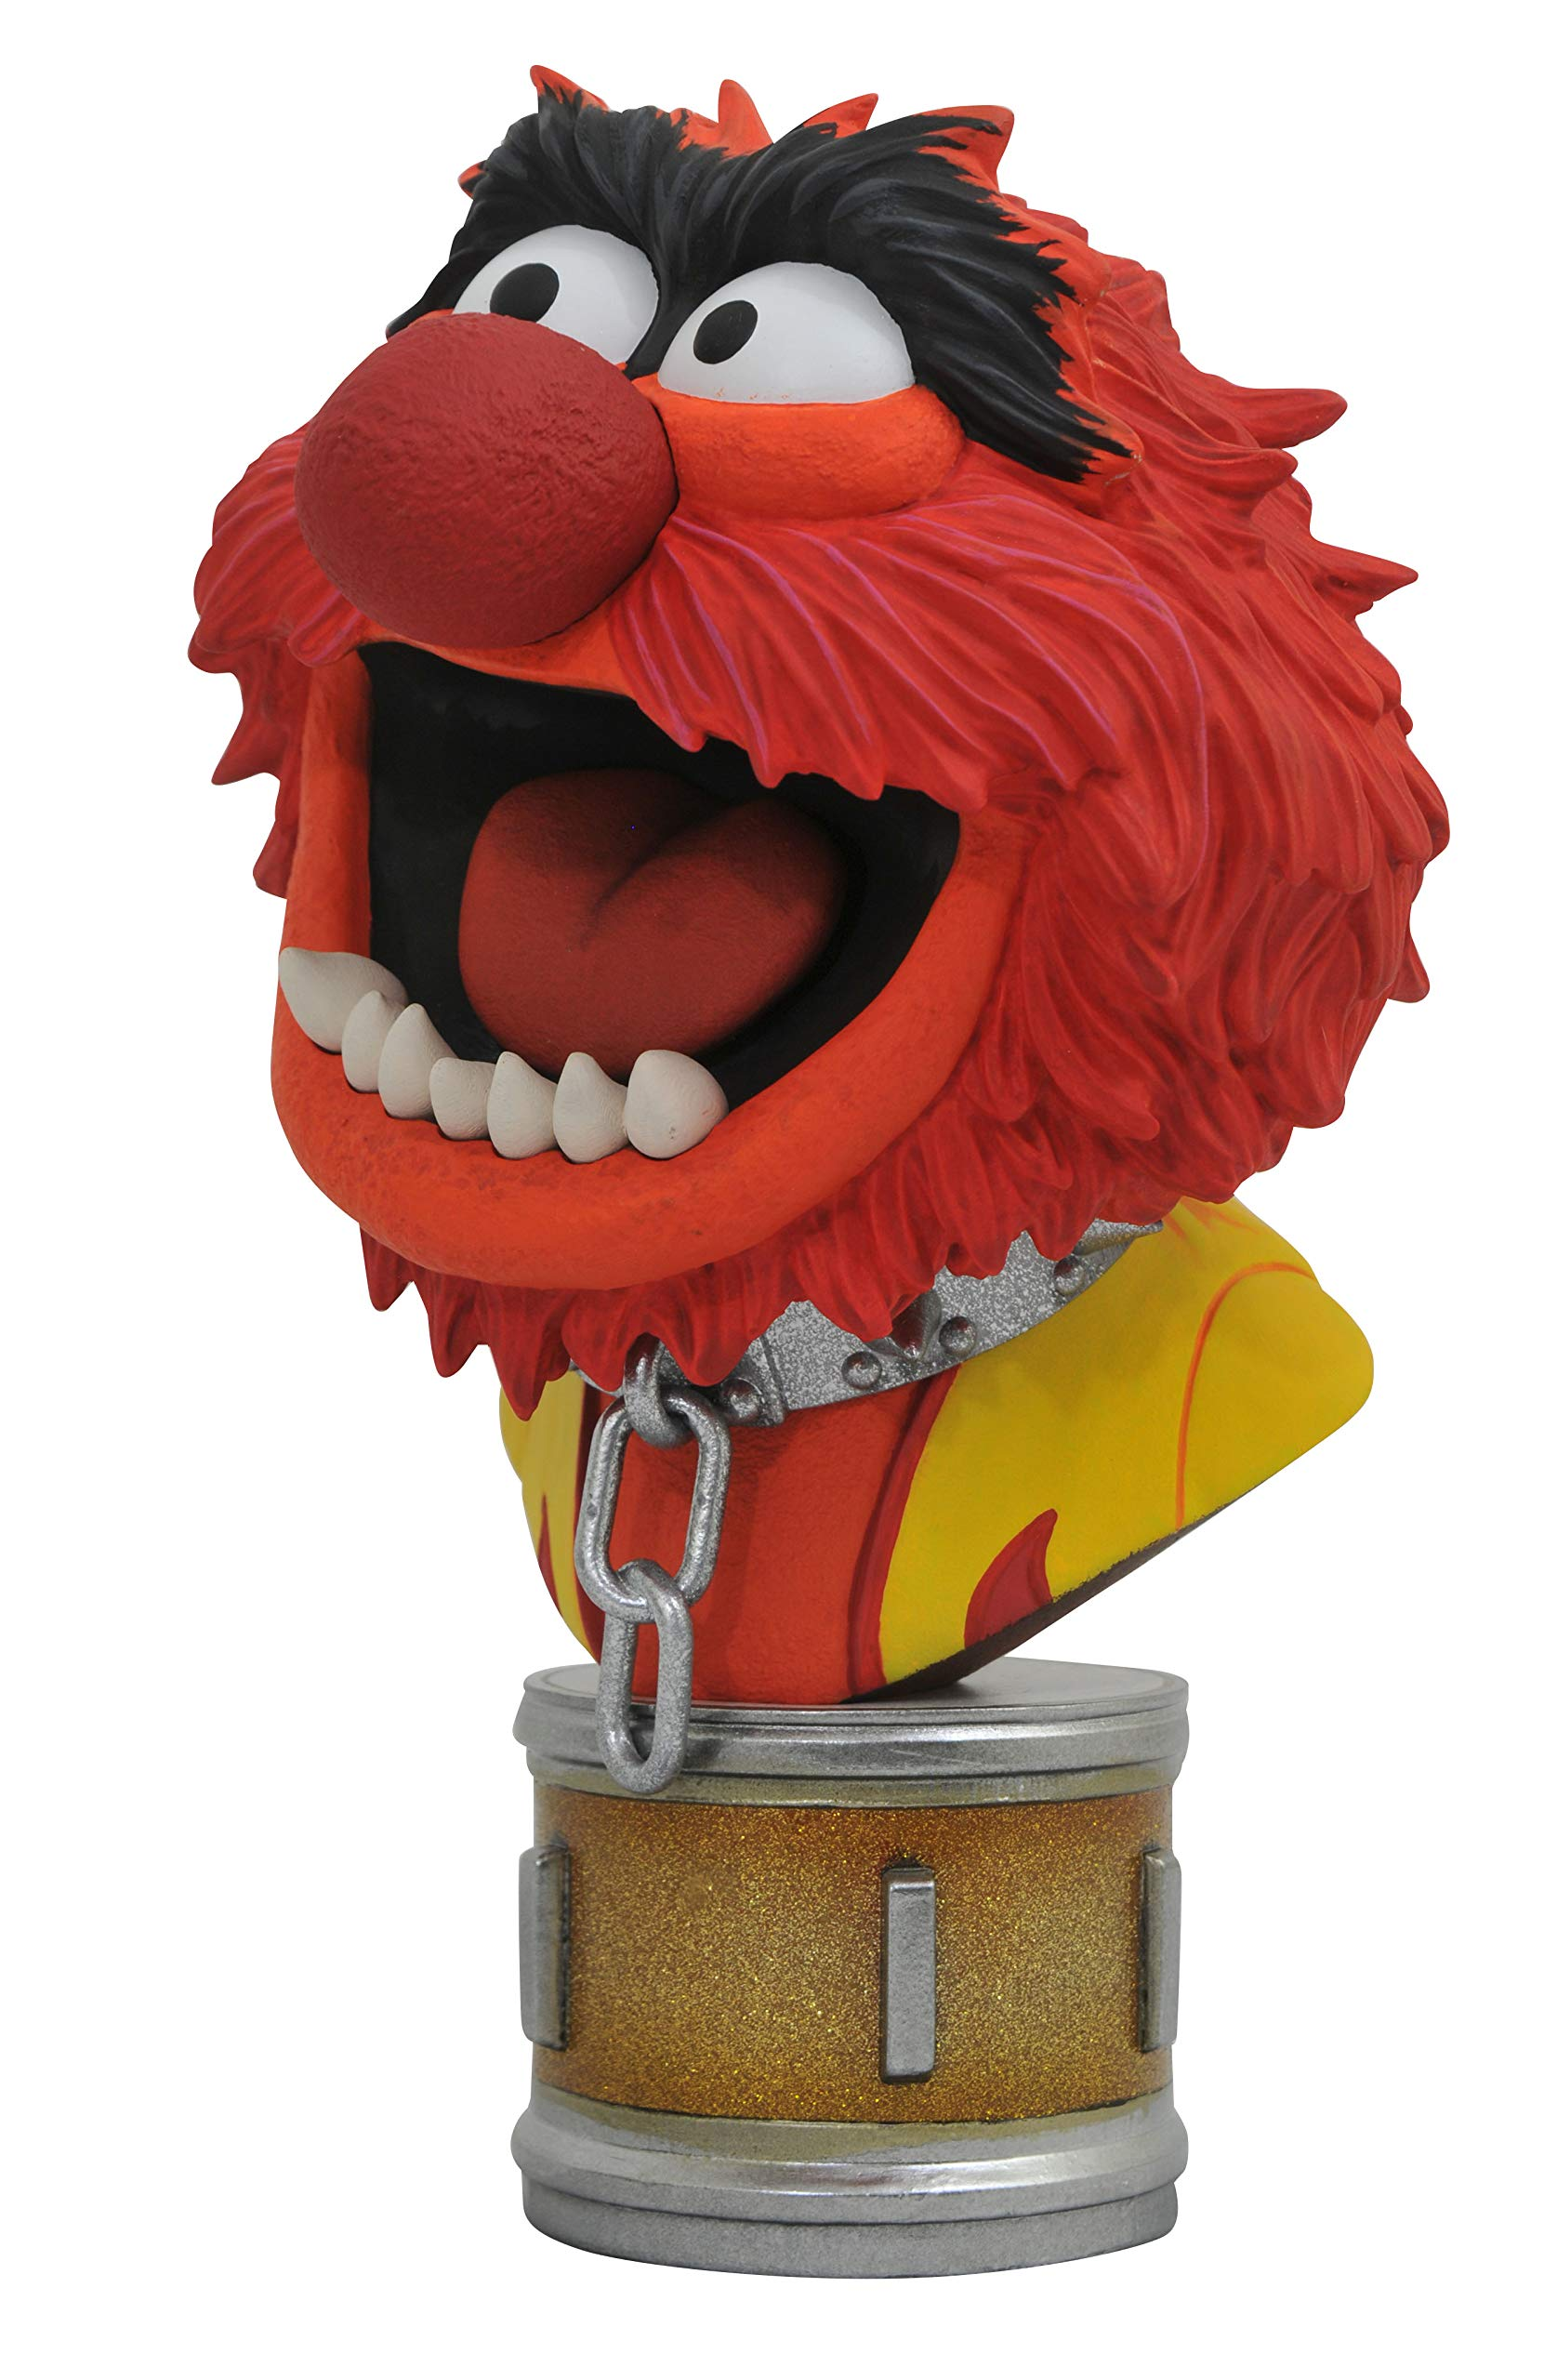 DIAMOND SELECT TOYS OCT182226 Select Toys Legends in 3-Dimensions: The Muppets Animal 1: 2 Scale Bust, Multicolor by DIAMOND SELECT TOYS (Image #5)